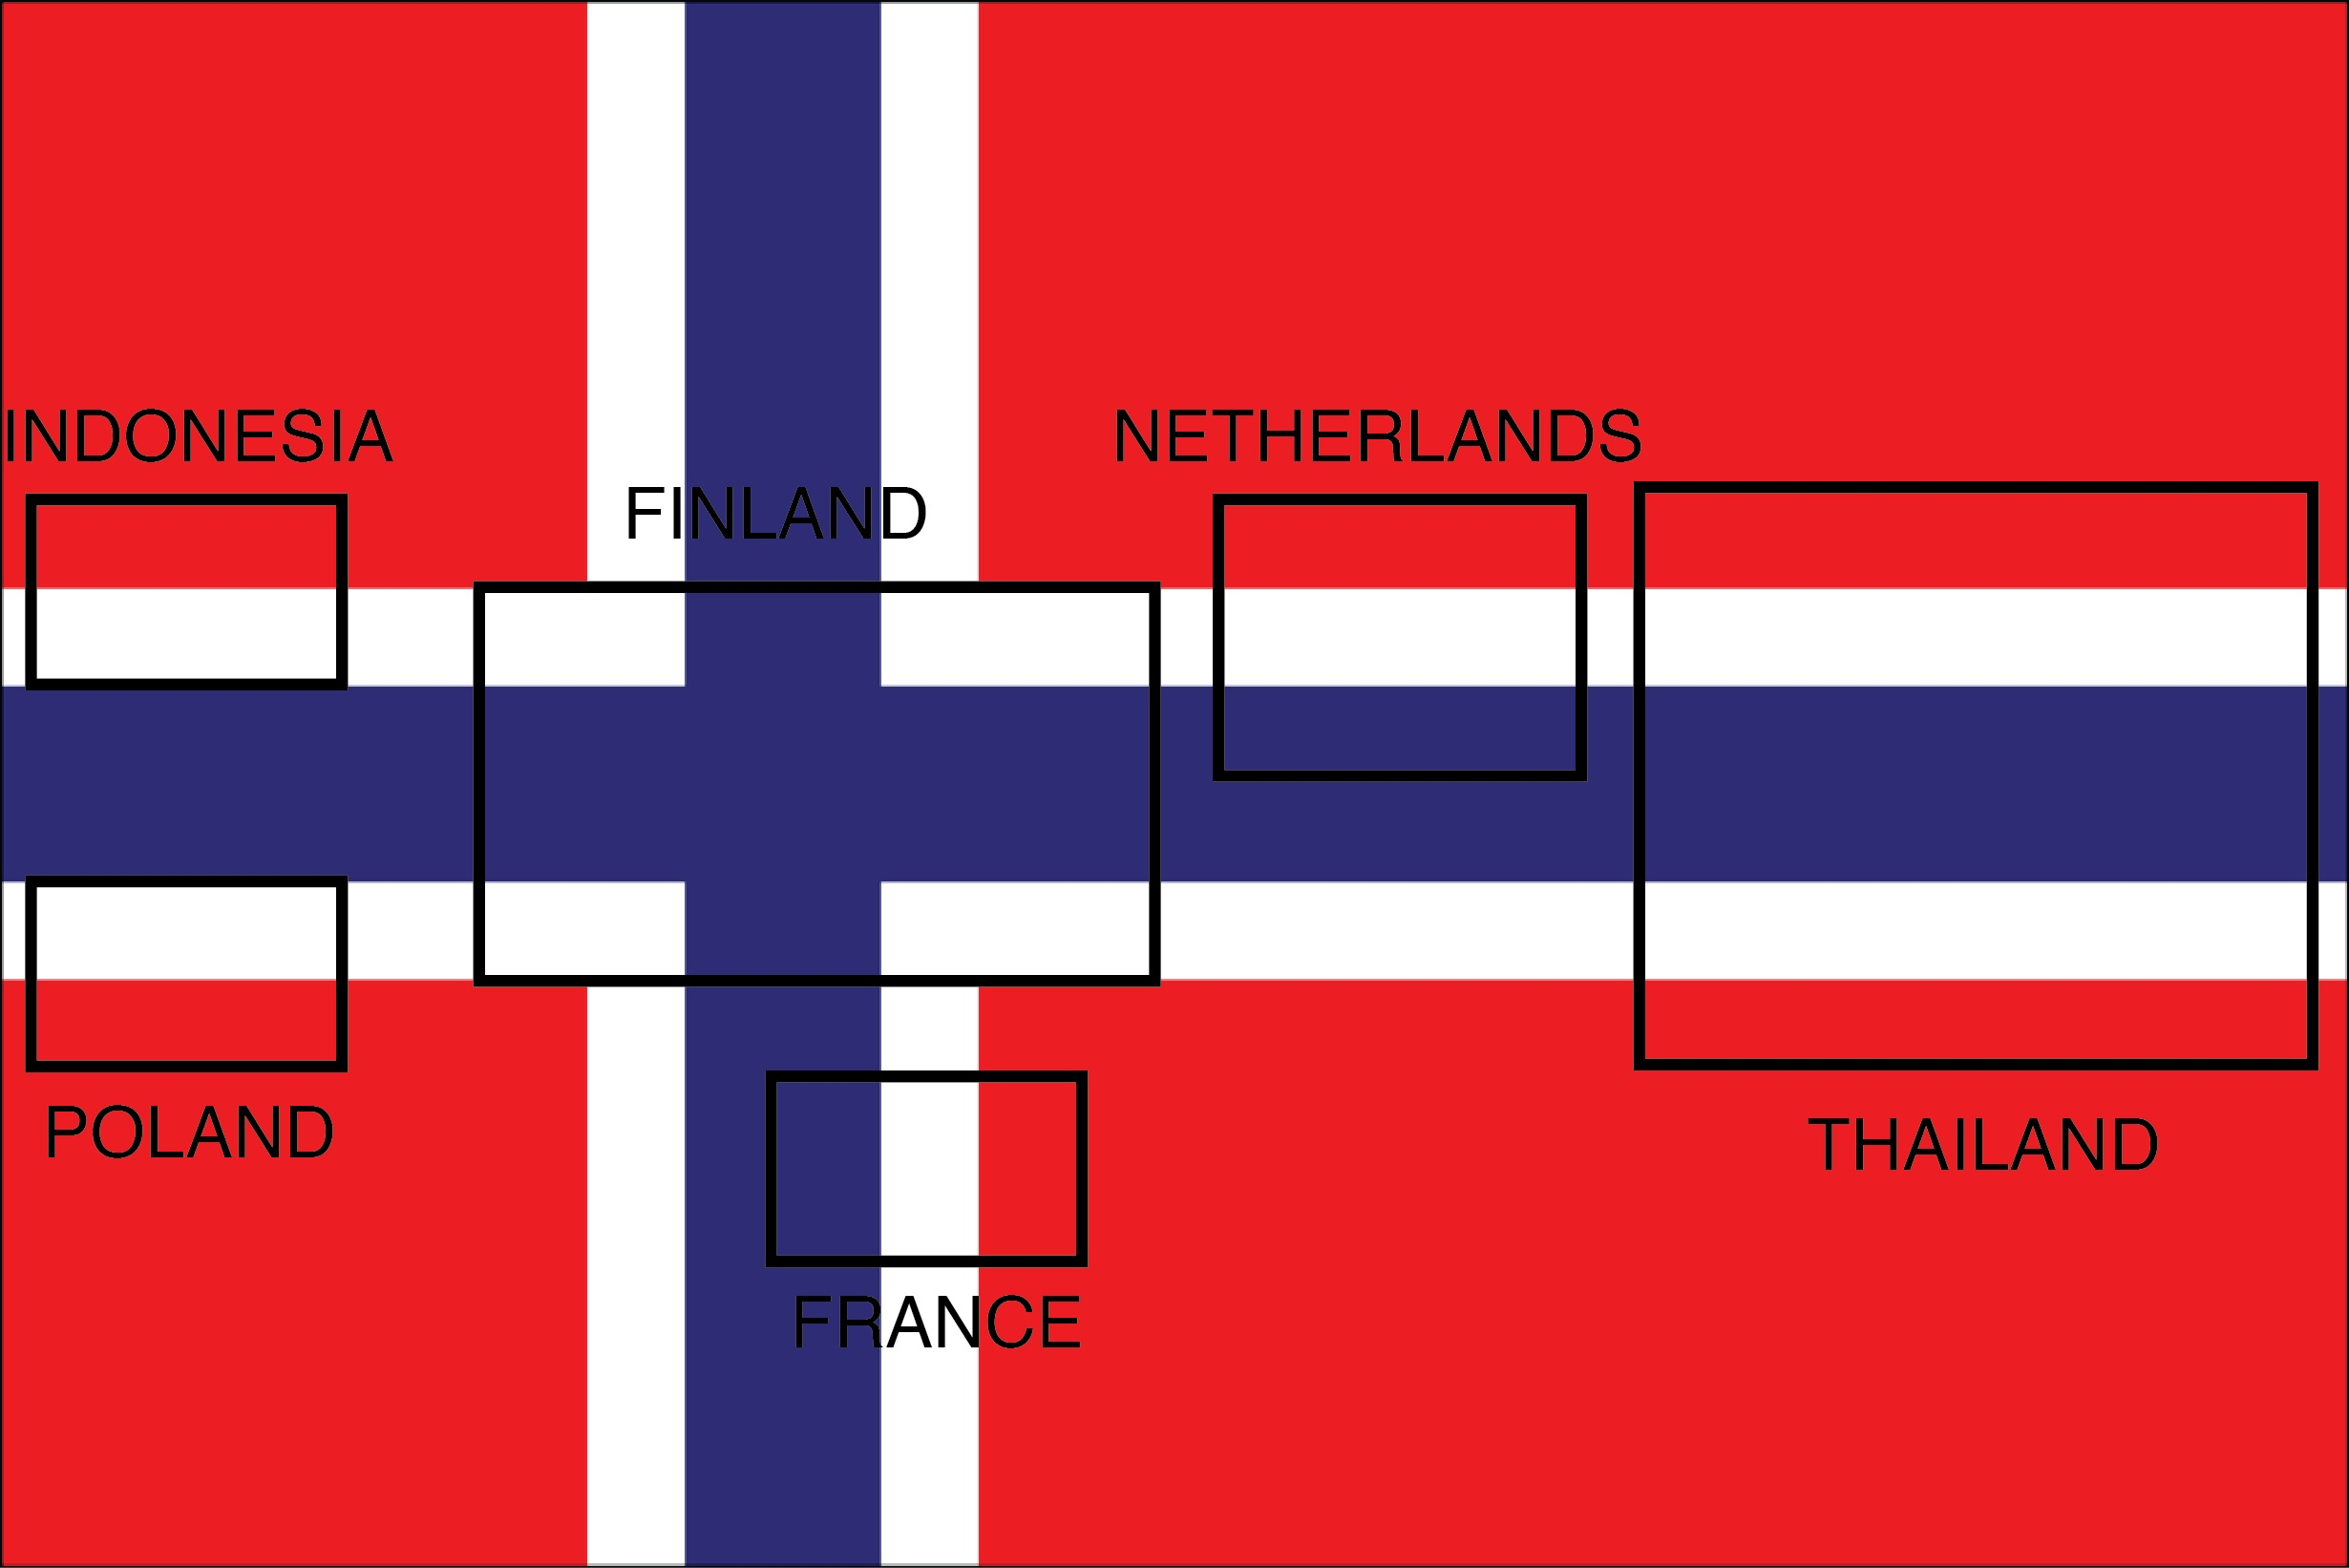 Me meaning of polish flag - The Flag Of Norway Contains Within It The Flag Designs Of Six Other Countries